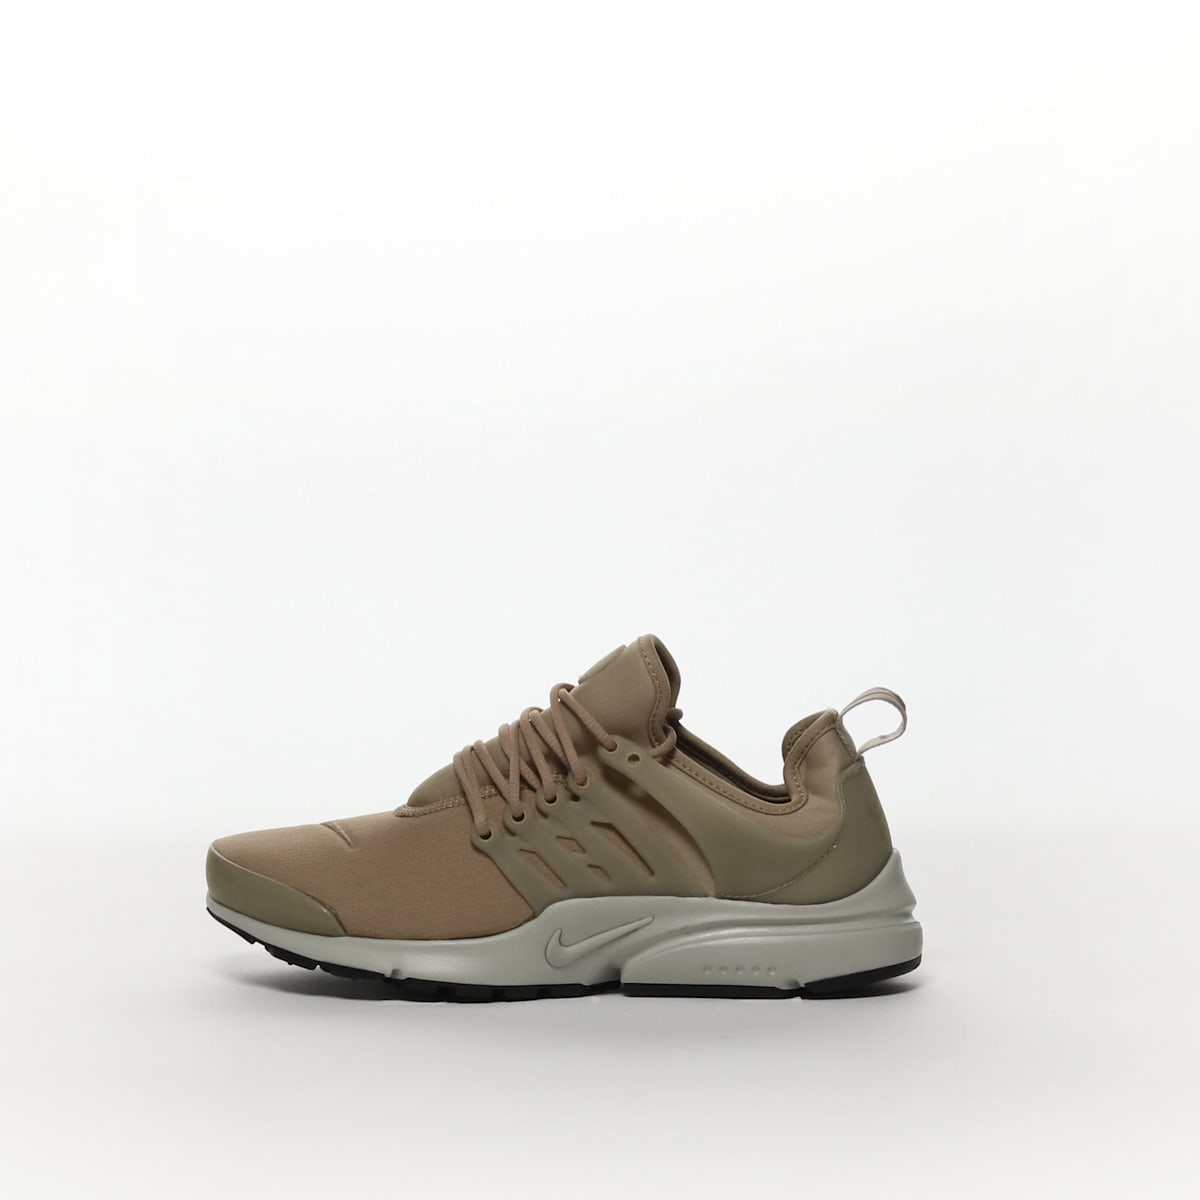 cheap for discount a002e 42a9e Women's Nike Air Presto SE Shoe - KHAKI/PALGRY